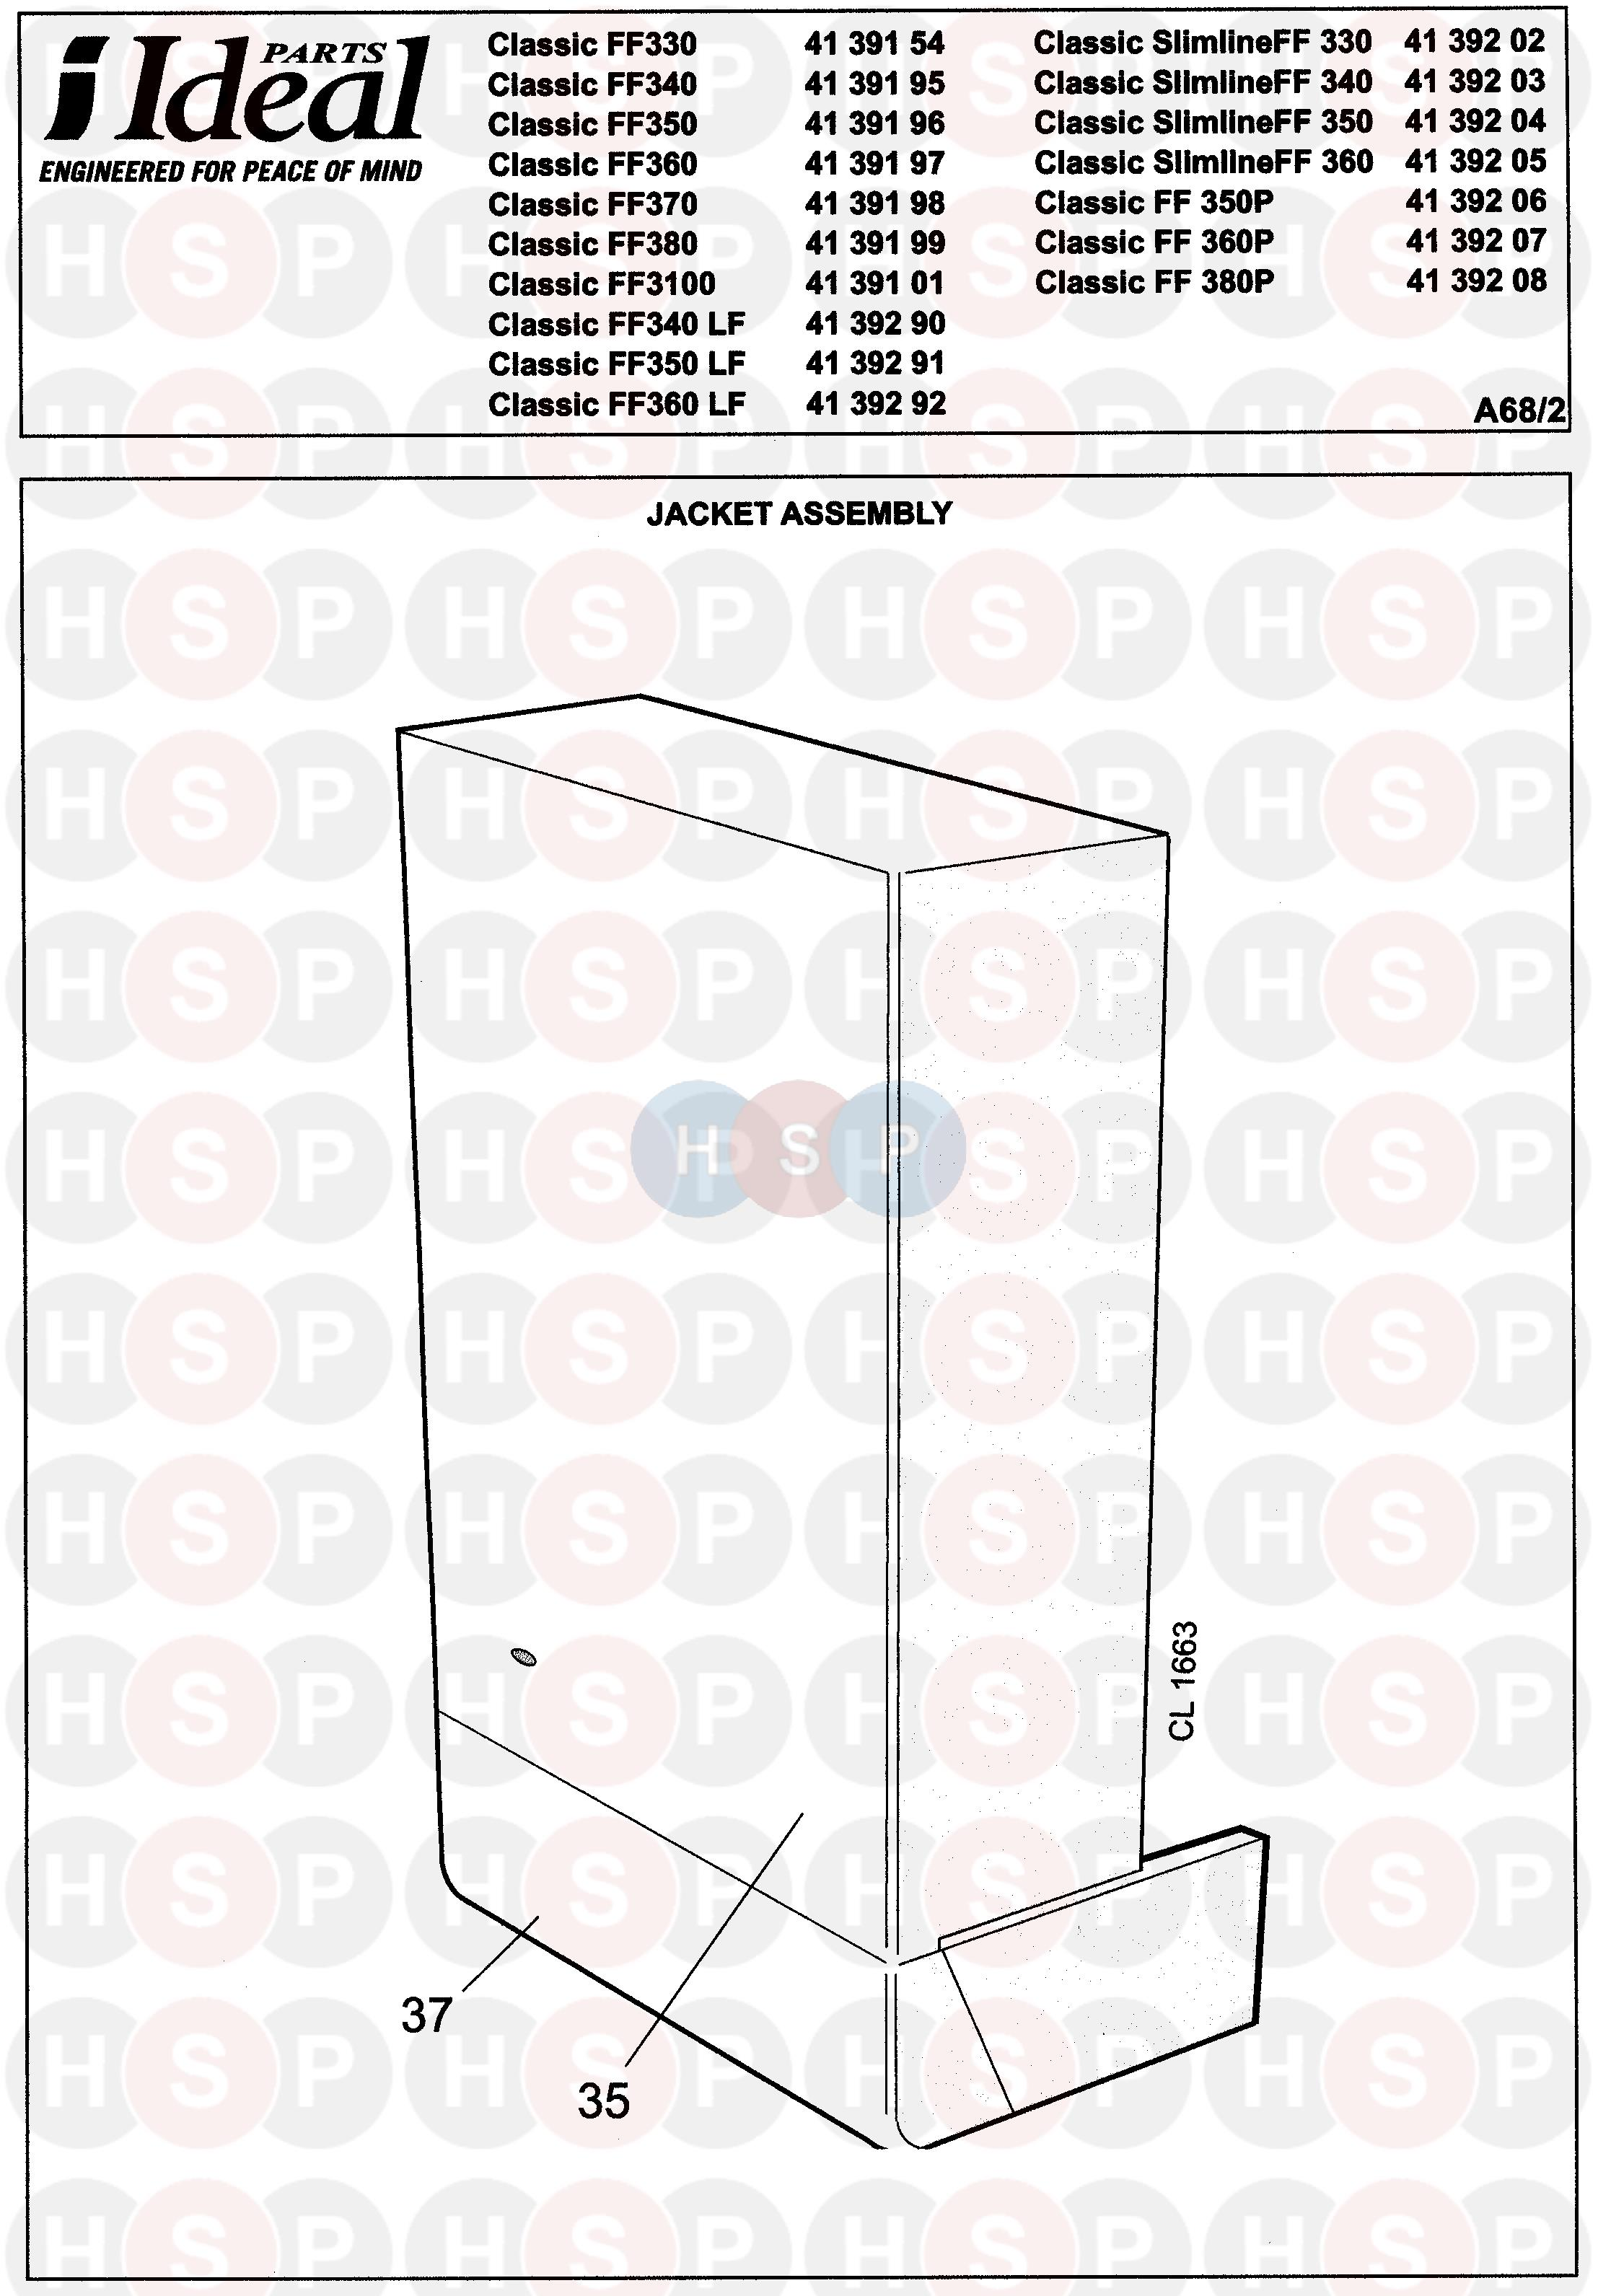 Wiring Diagram Temporary Power Pole moreover 49 1913 moreover Rv Electric Step Wiring Diagram together with Electrical likewise 96 Santera Rv Fuse Box Reference. on rv distribution panel wiring diagram